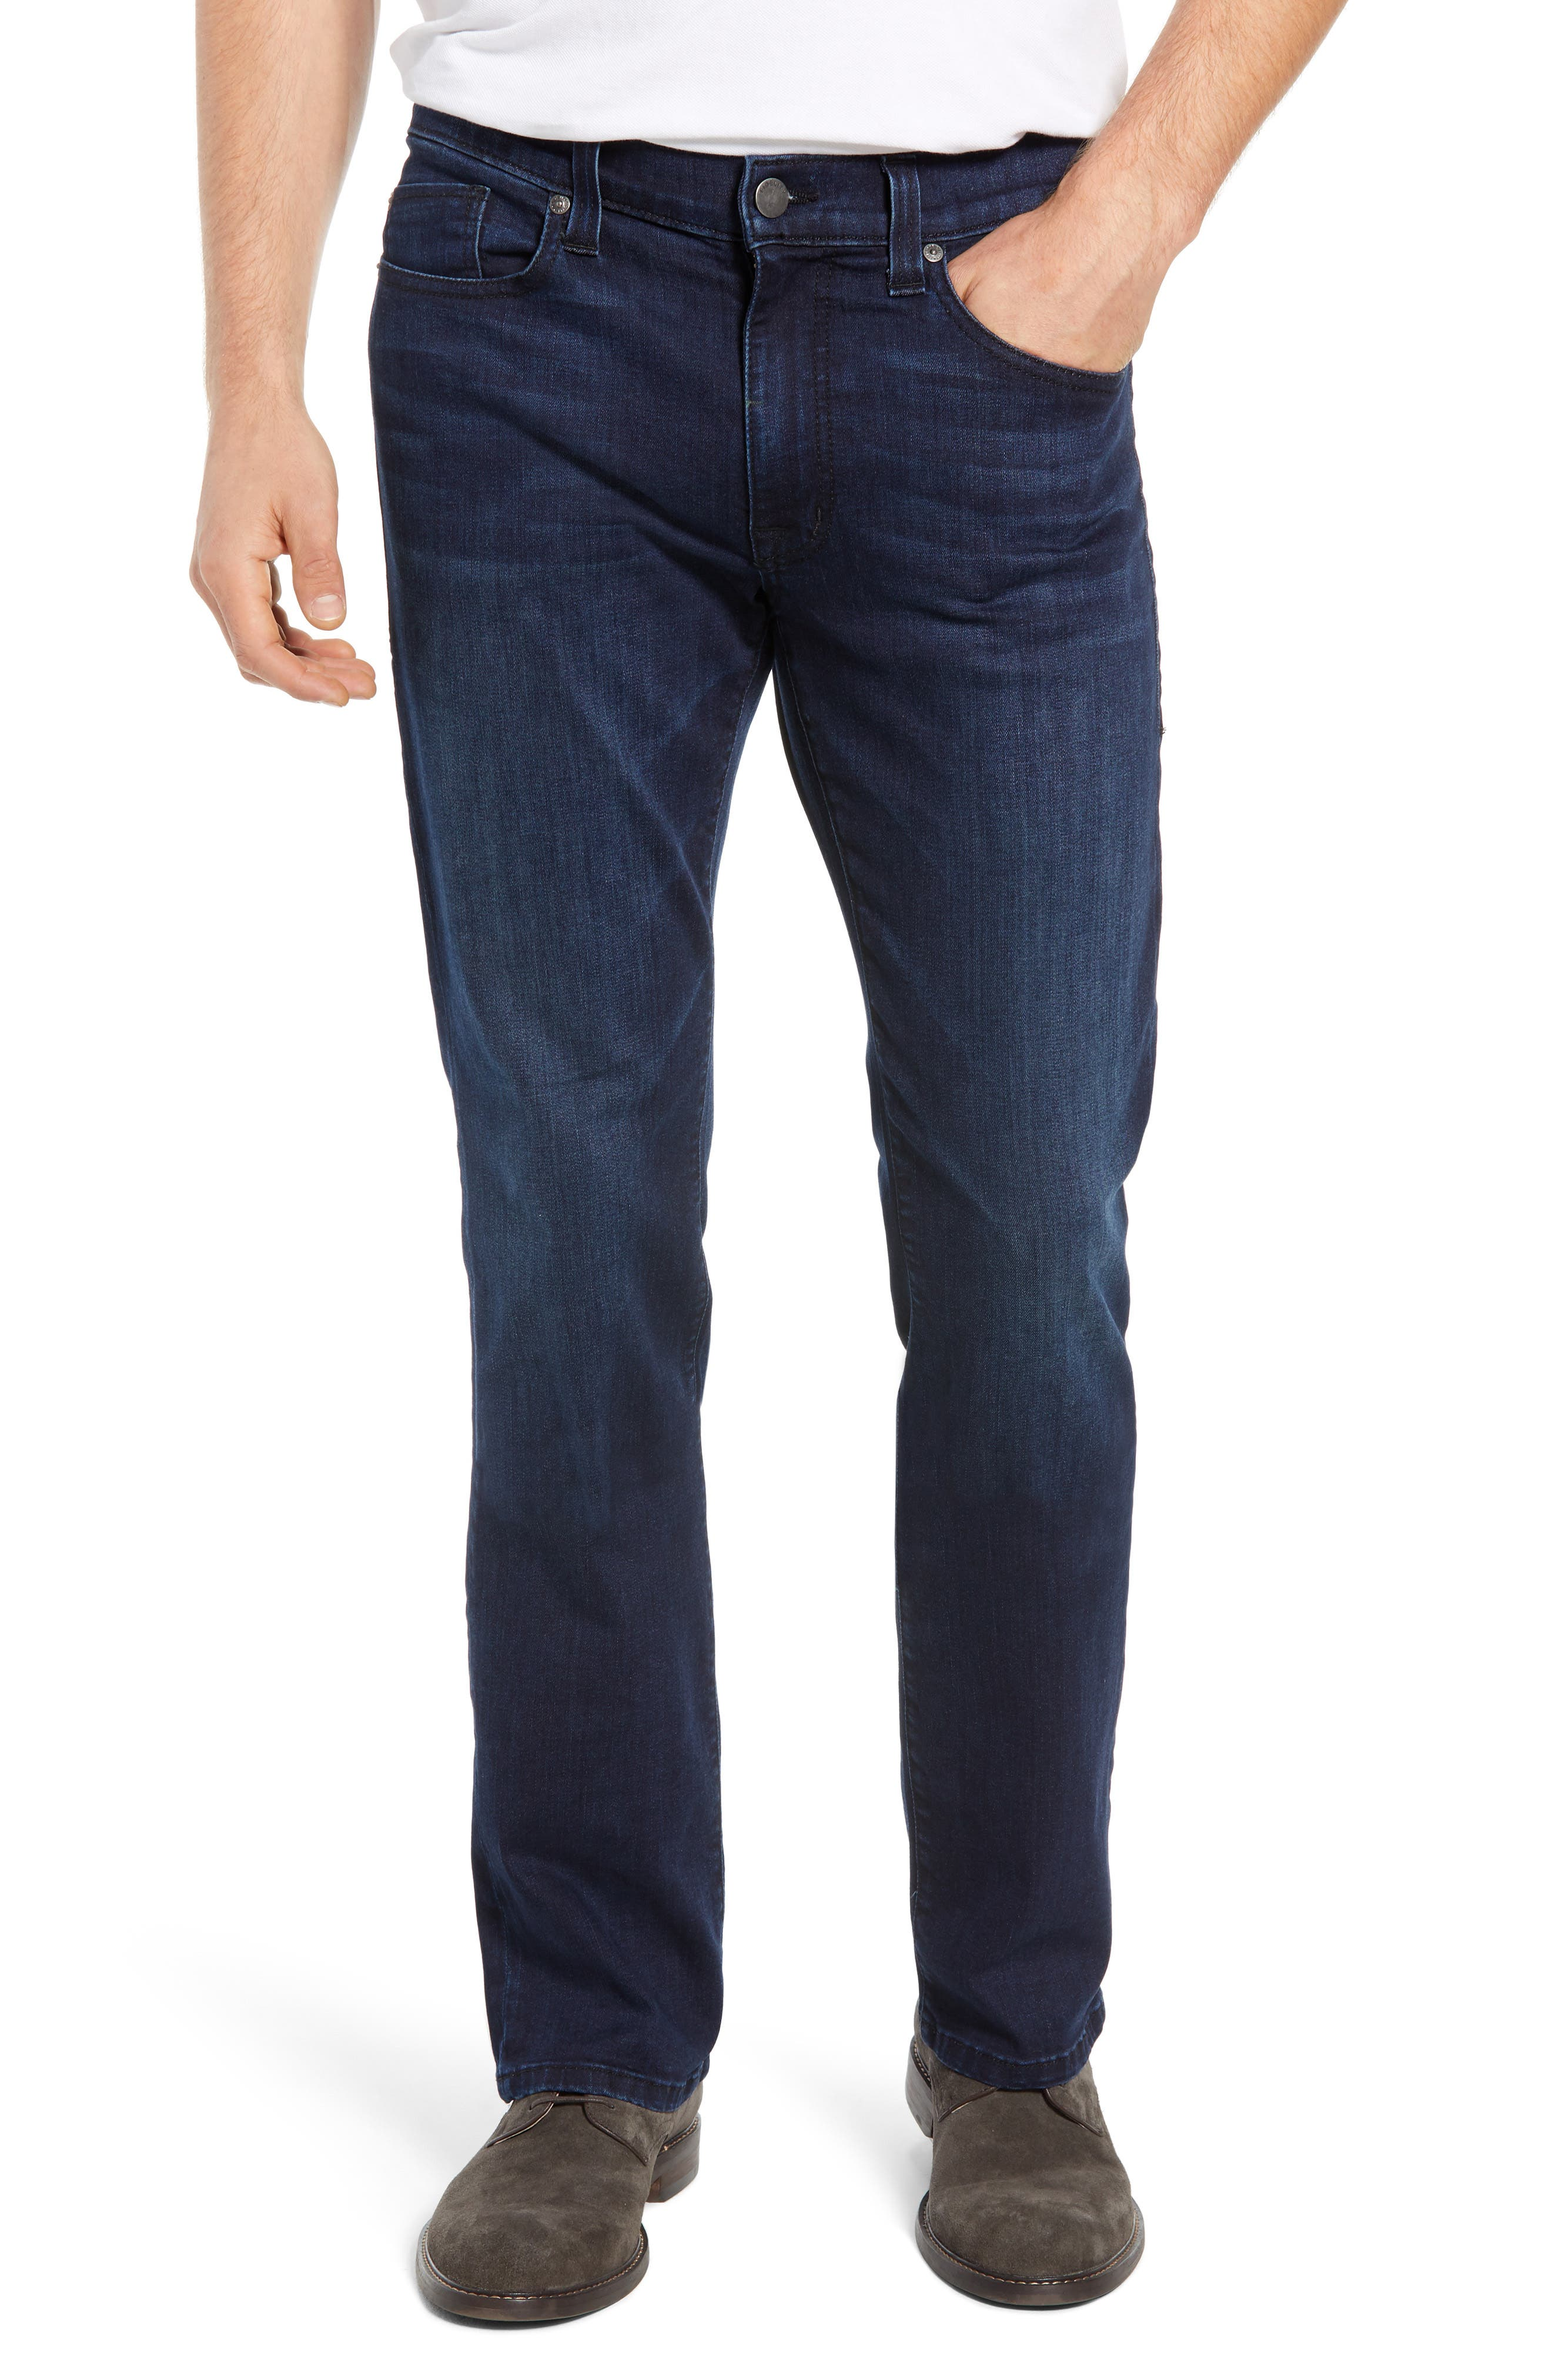 50-11 Relaxed Fit Jeans,                         Main,                         color, HENDRIX